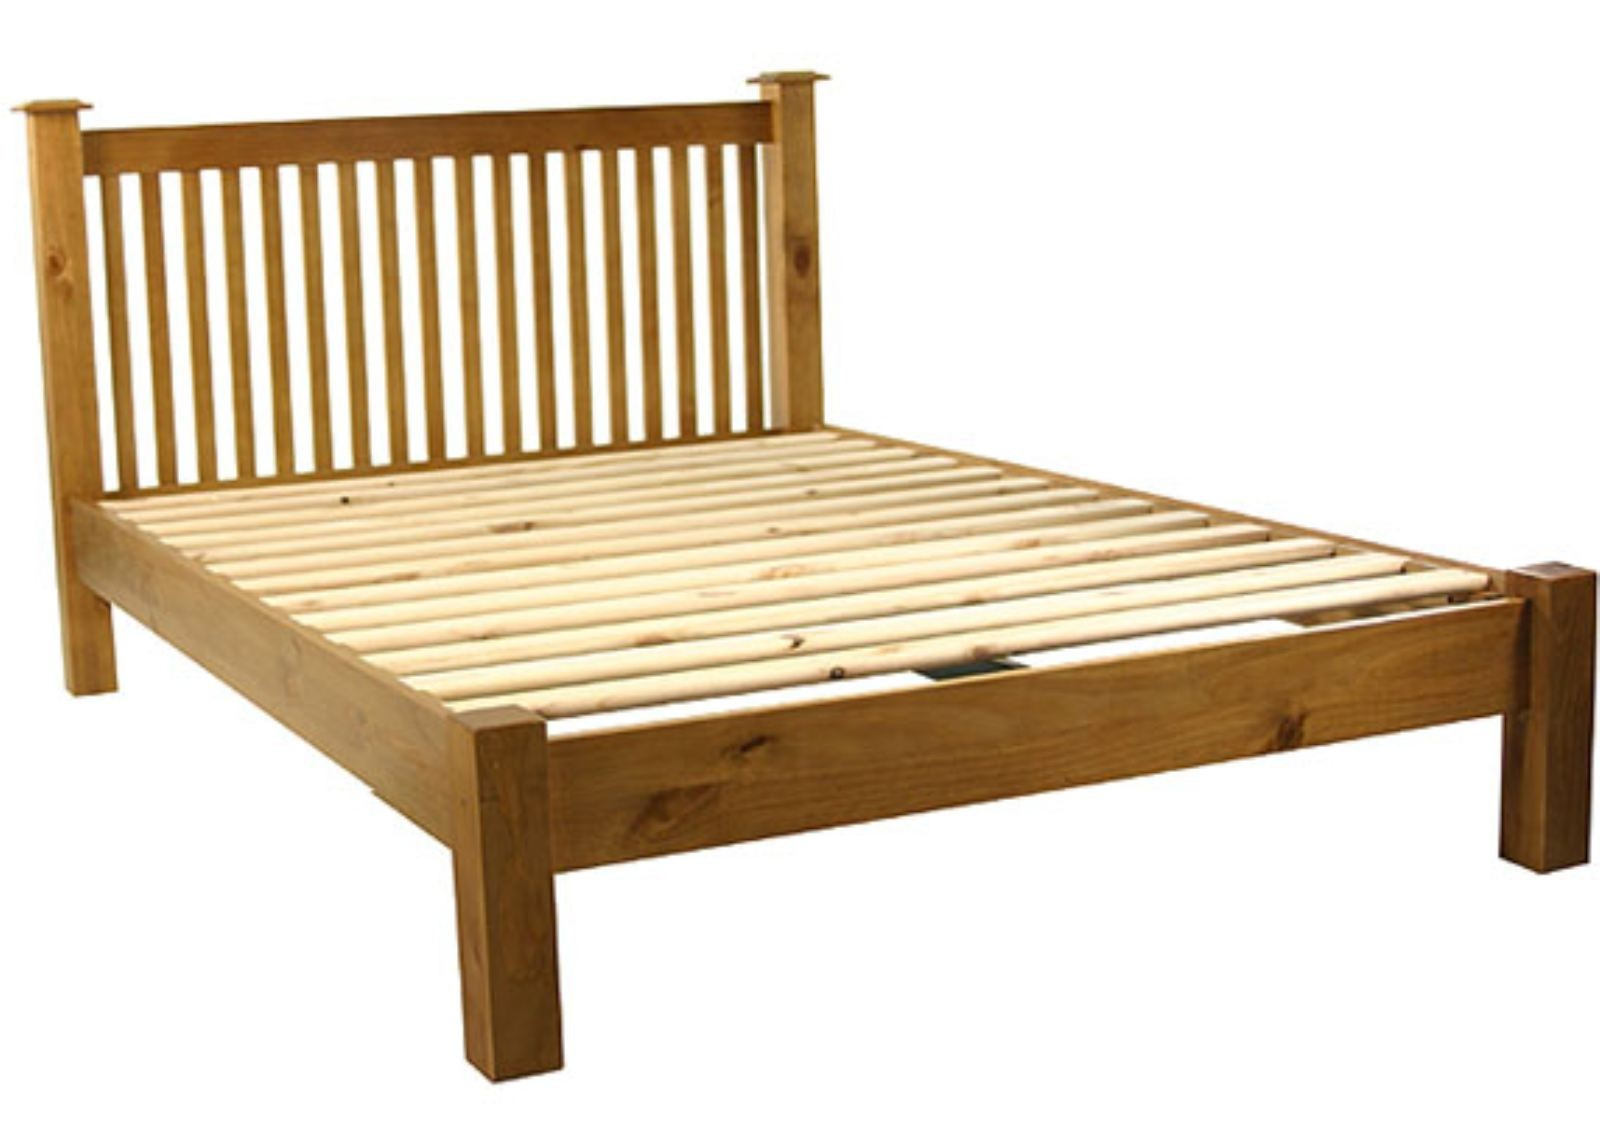 chunky pine bedroom furniture 5 king size bed this stunning 5 chunky